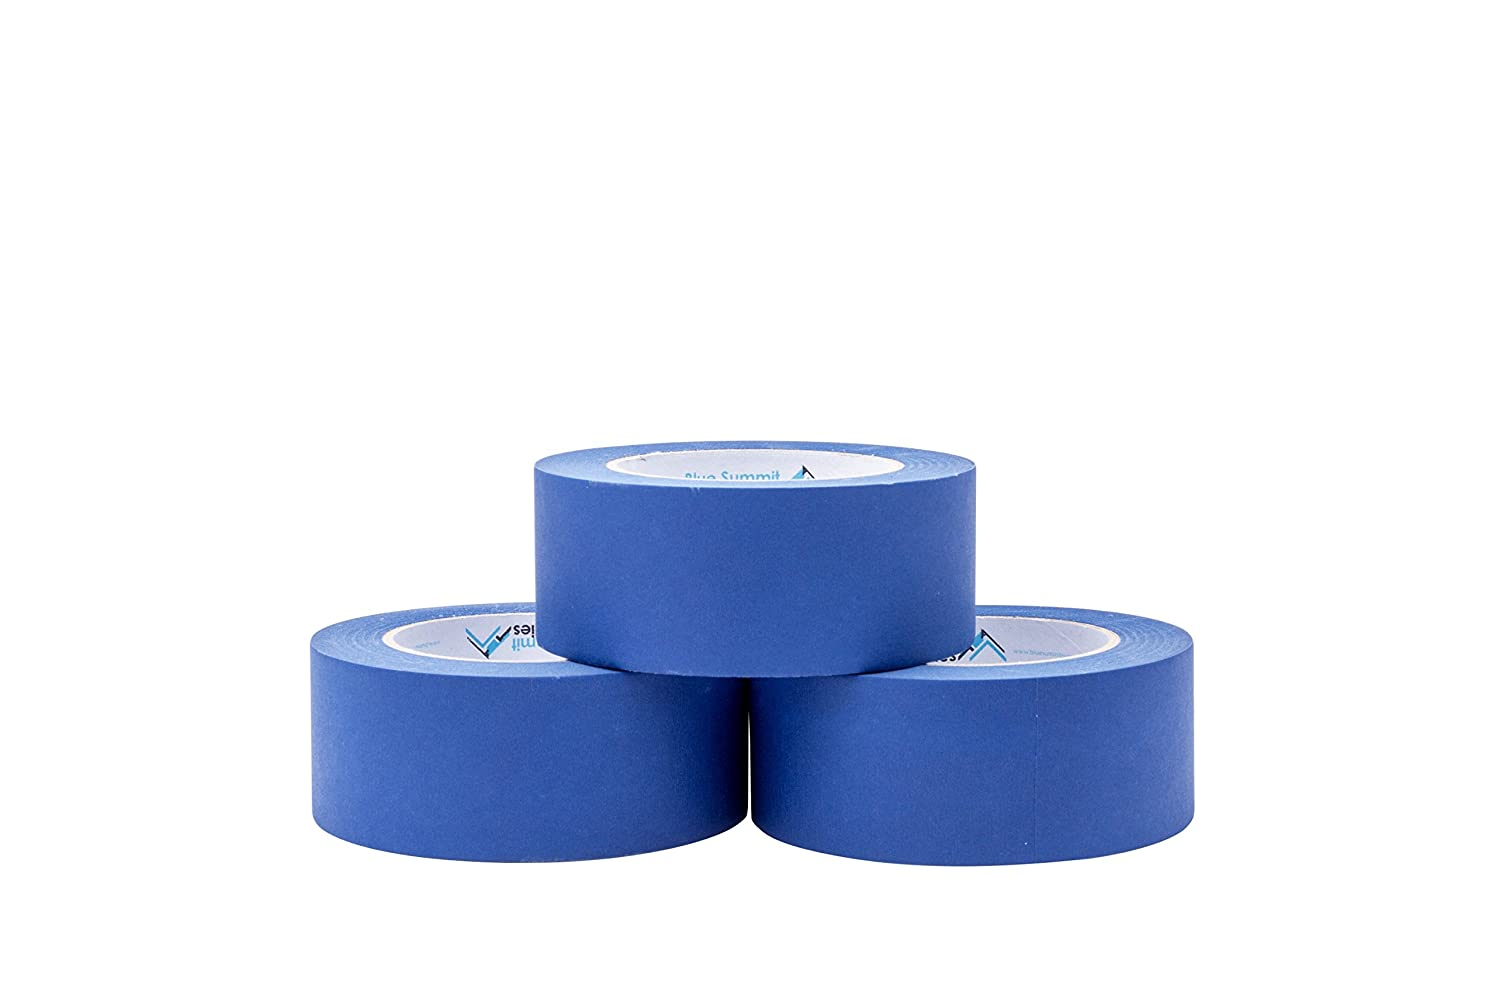 3 Pack 1.88'' Blue Painters Tape, Medium Adhesive That Sticks Well but Leaves no Residue Behind, 60 Yards Length, 3 Rolls, 180 Total Yards